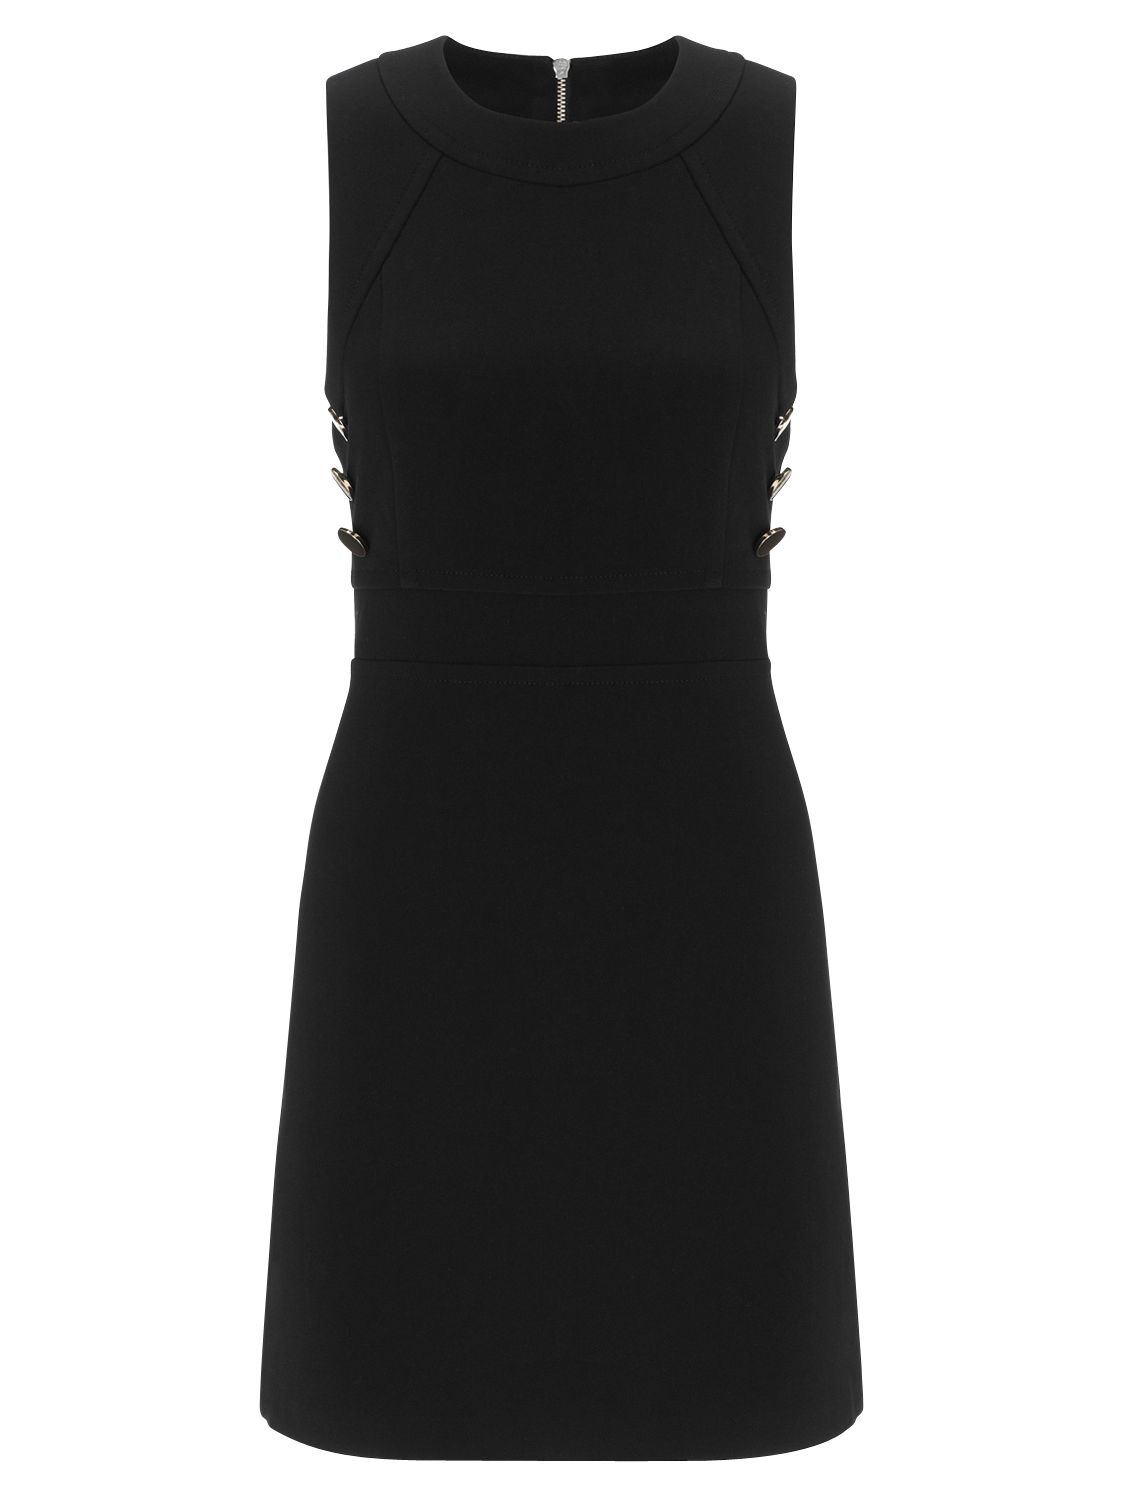 warehouse button detail shift dress midnight, warehouse, button, detail, shift, dress, midnight, 12|14, women, womens dresses, special offers, womenswear offers, warehouse (copy), womens dresses offers, latest reductions, 1855337